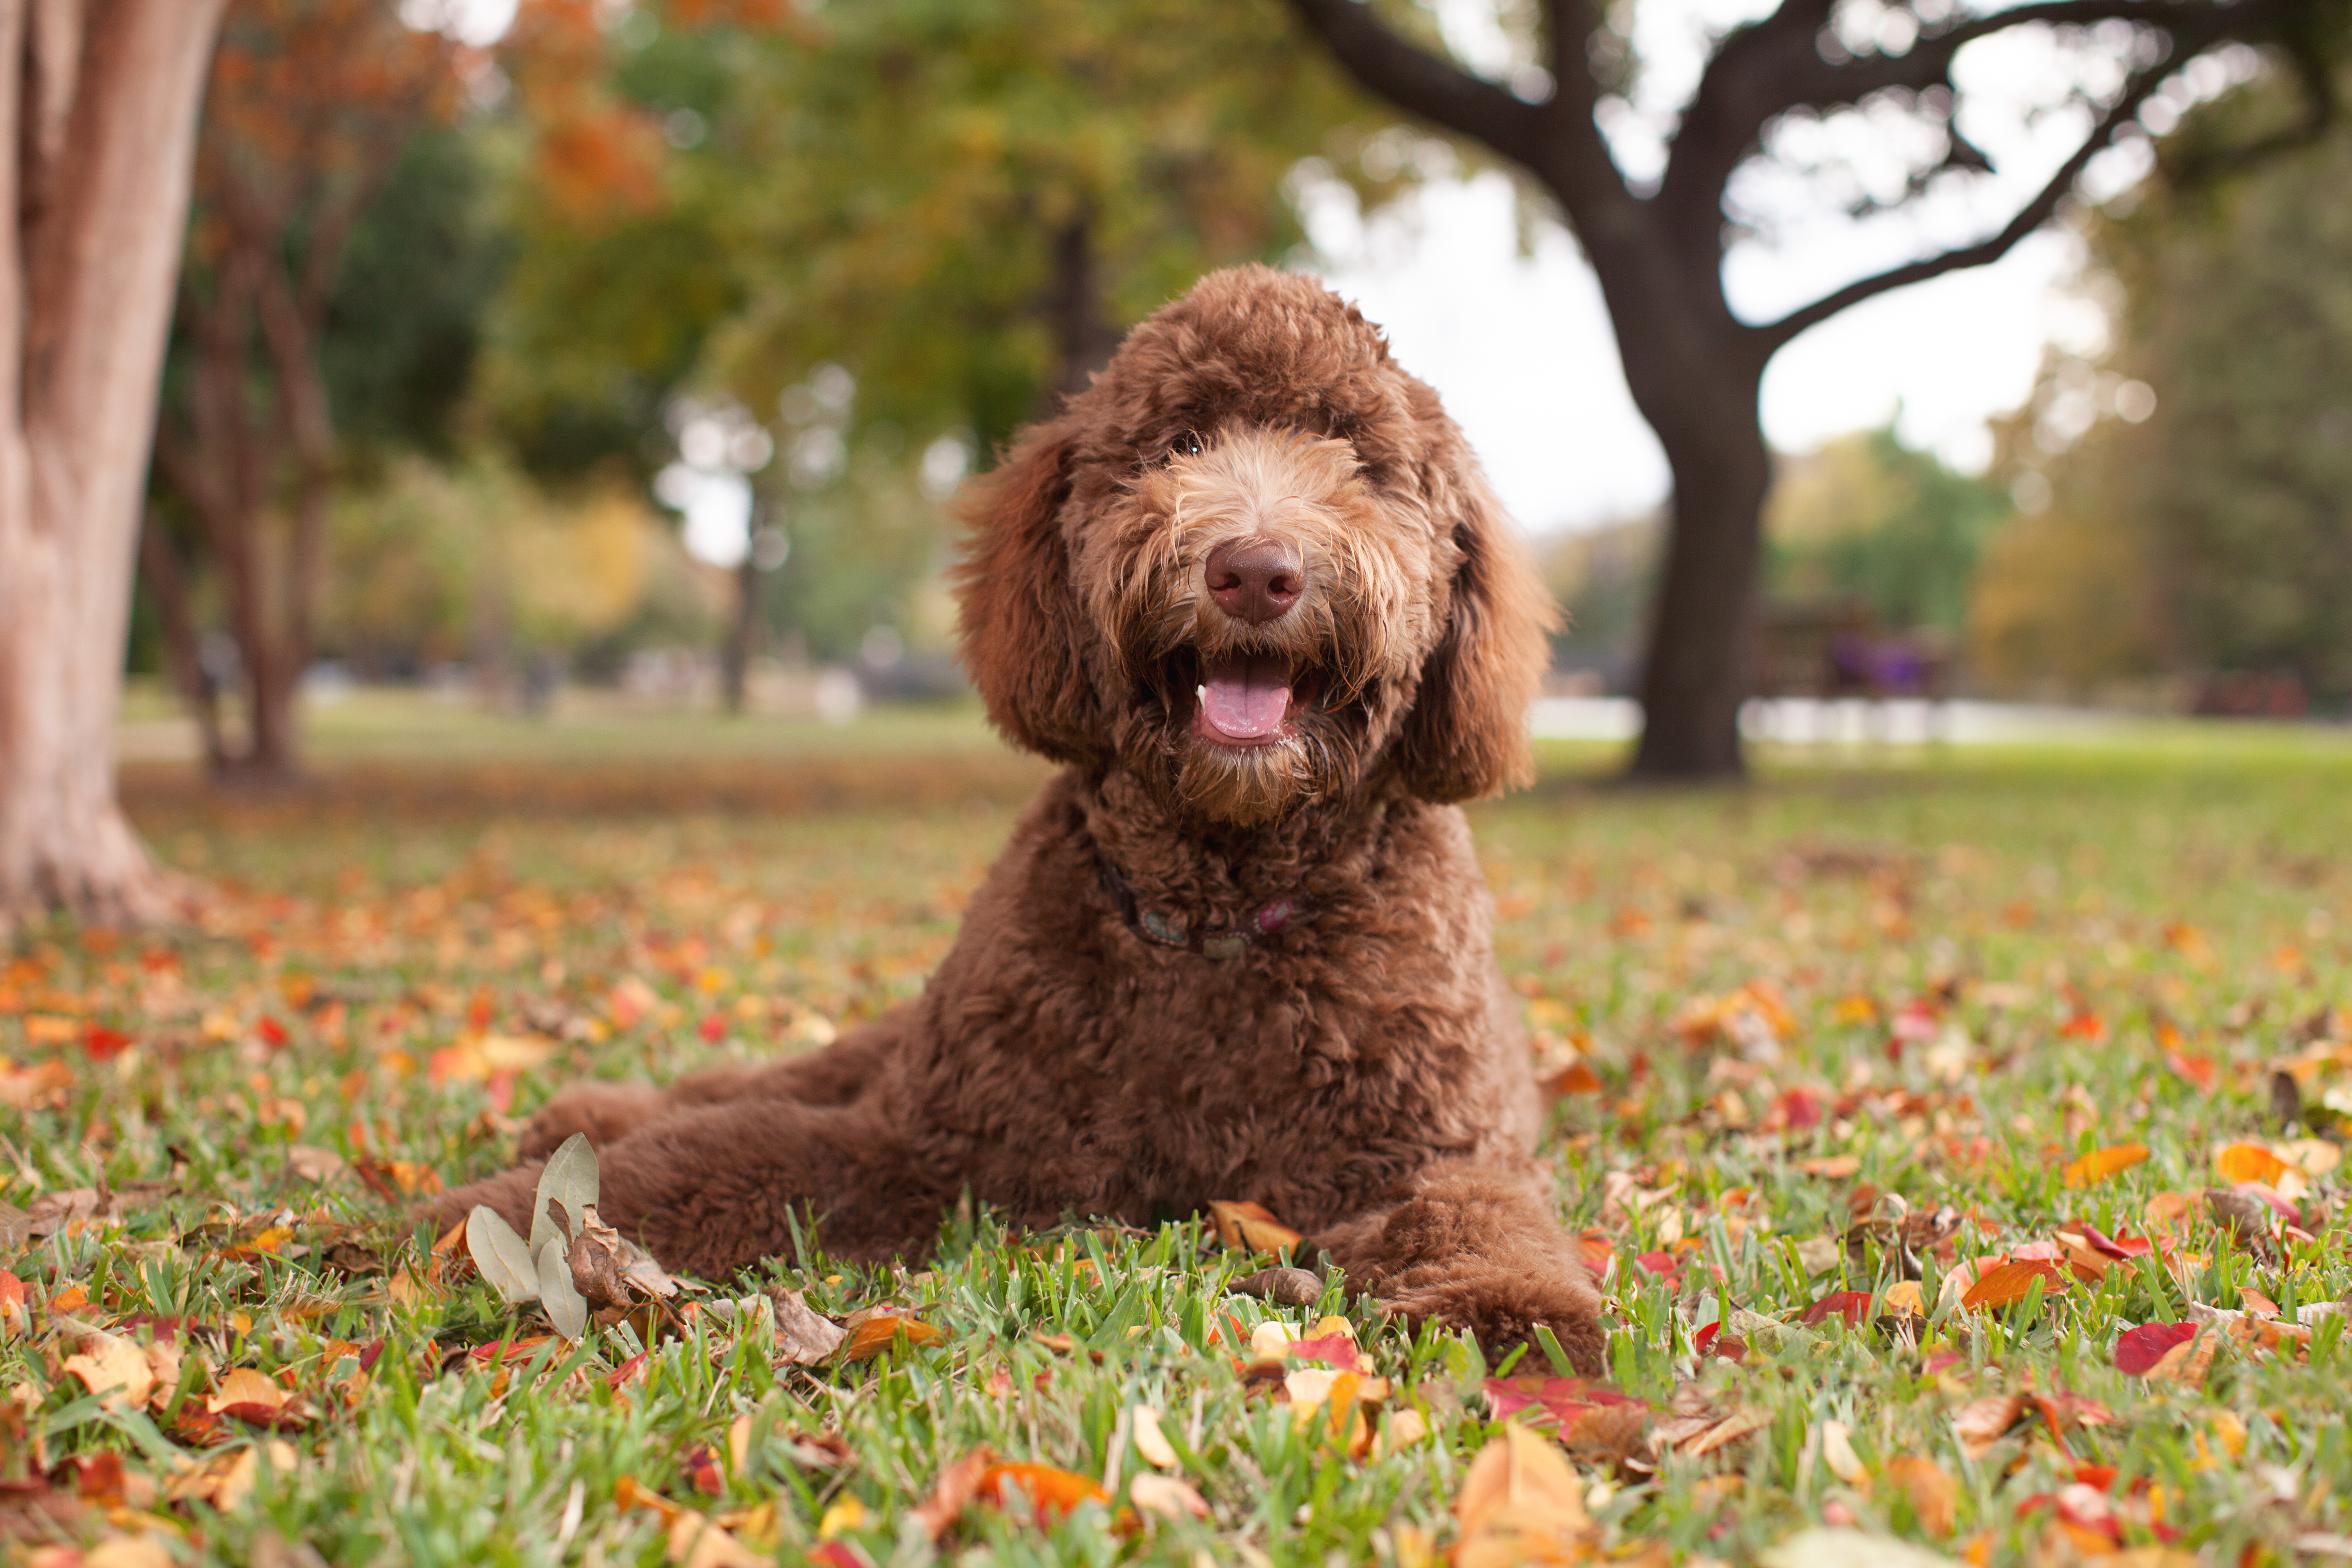 """Bred to be a guide dog for people who couldn't tolerate the hair of Labs but could handle a poodle'scoat, the Labradoodle was one of the first """"designer breeds"""" of dogs, which critics say may put breeder profit over animal care."""